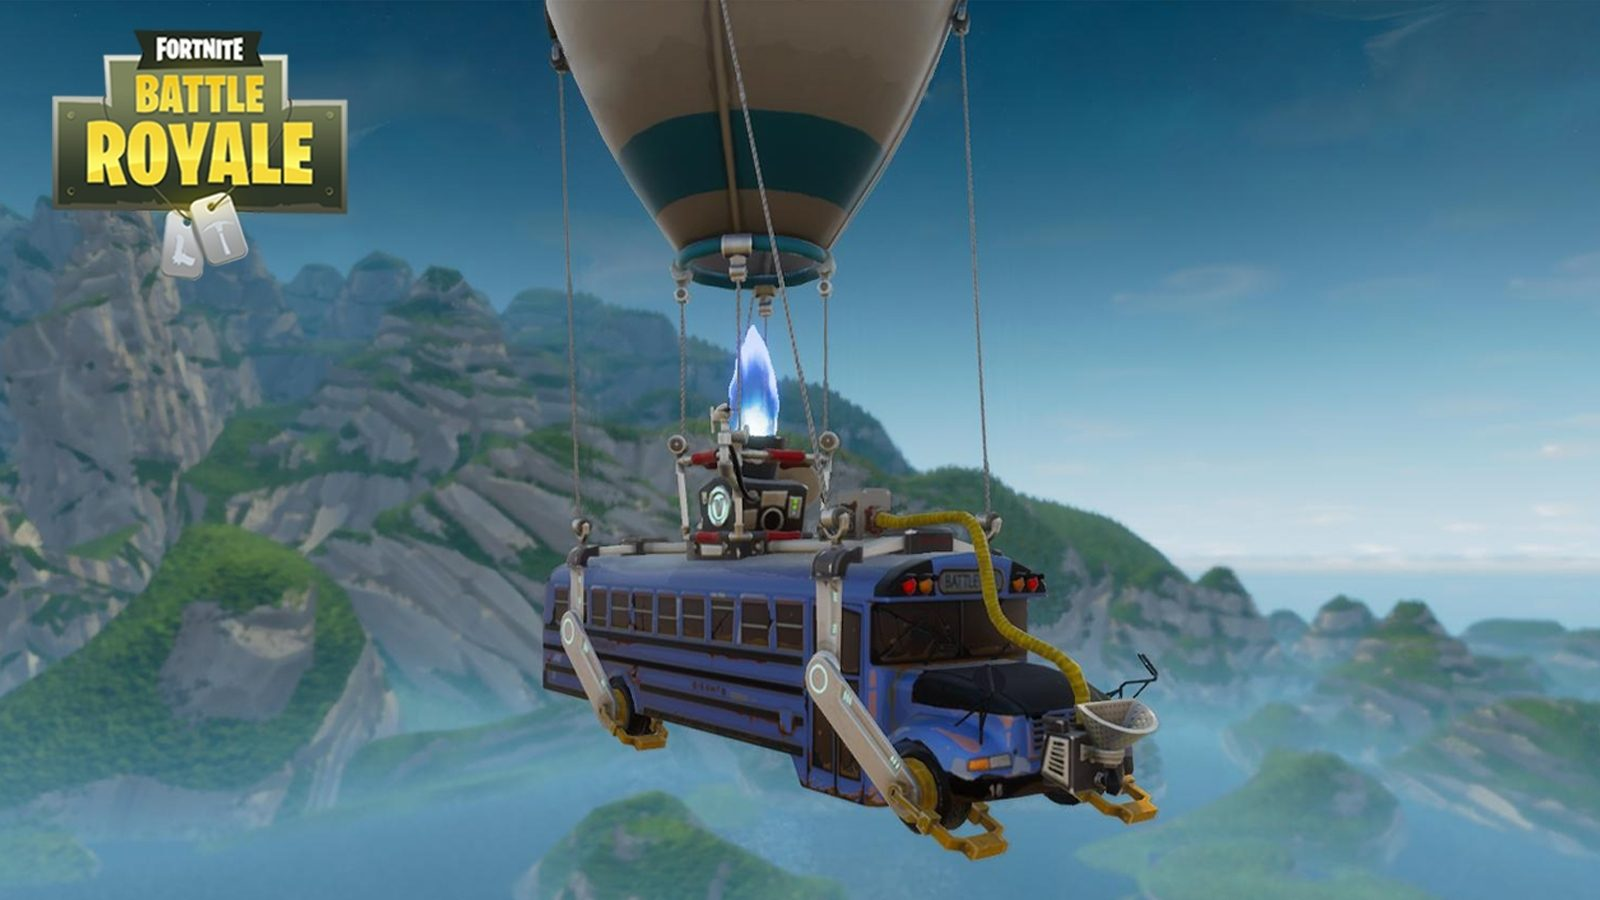 Fortnite Battle Bus Hot Air Balloon Appears Ready for E3 Dexertocom 1600x900